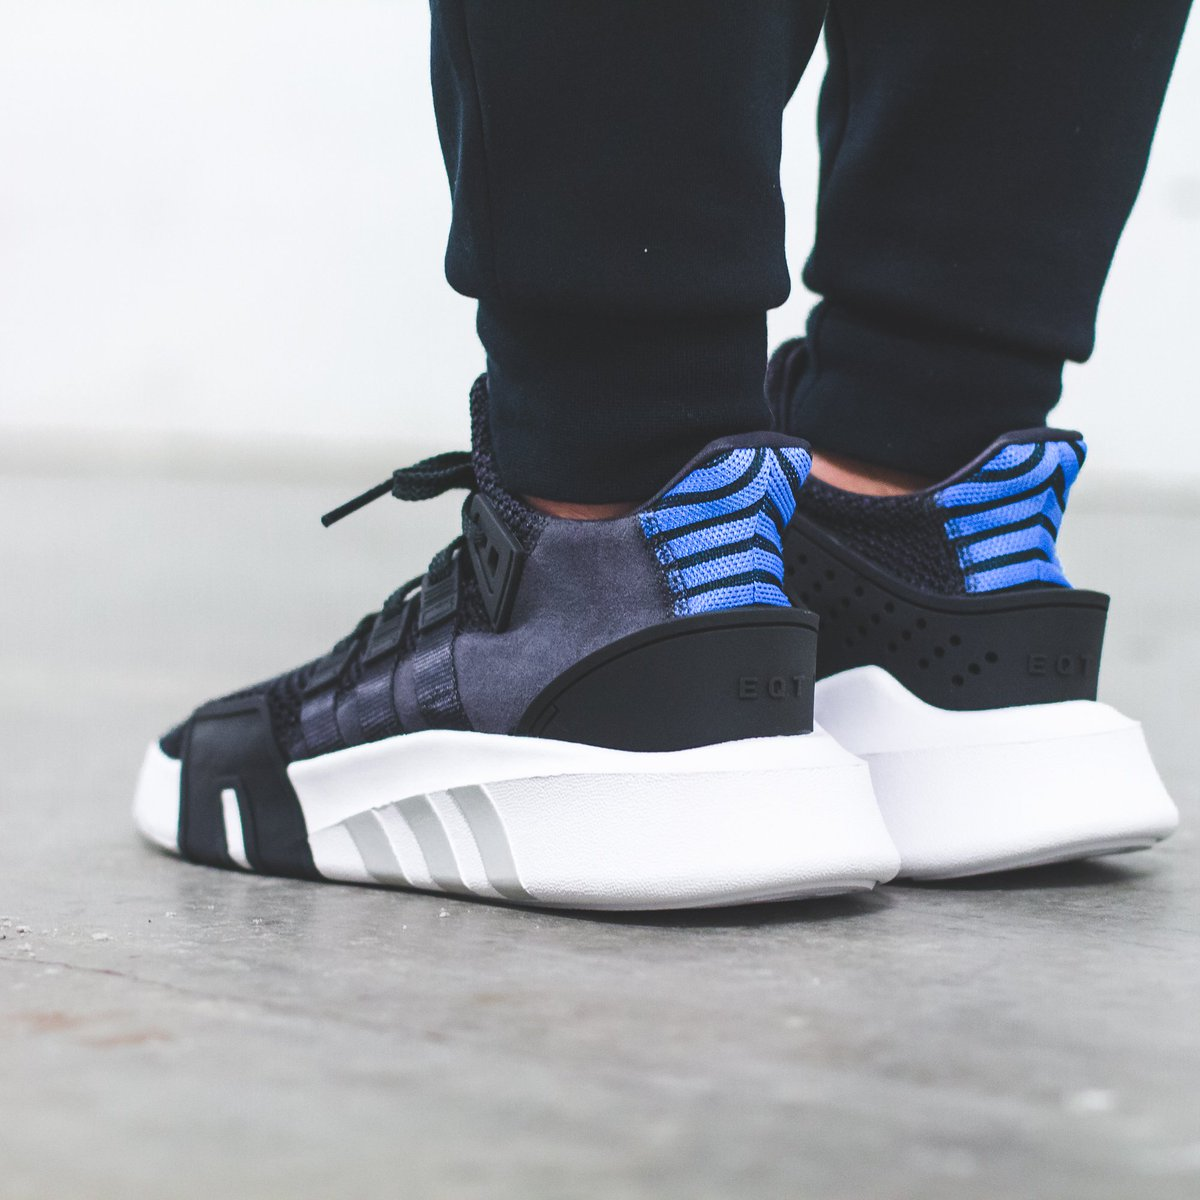 men s originals eqt bask adv shoes   Défi J arrête, j y gagne! 438f81a967